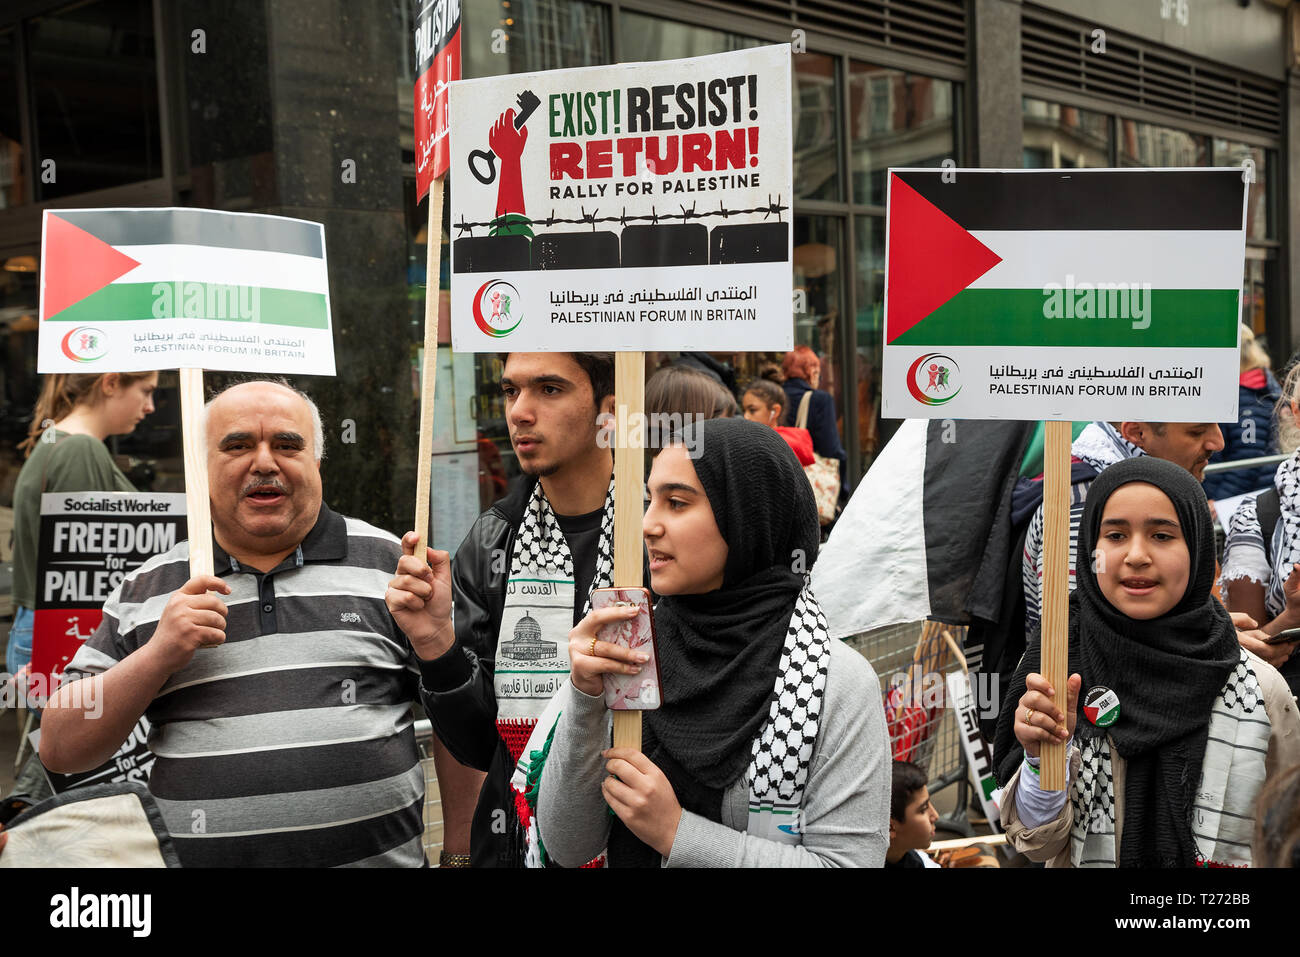 London, UK. 30th March 2019. Rally for Palestine, Exist, Resist and Return. Held outside the Israeli Embassy on Palestinian Land Day. Demanding freedom, justice and equality for the Palestinian people. March 30th also marks the the 1st anniversary of the start of the Great Return March. Organised by: Palestine Solidarity Campaign, Stop the War Coalition, Palestinian Forum in Britain, Friends of Al- Aqsa and Muslim Association of Britain. Credit: Stephen Bell/Alamy Live News. - Stock Image